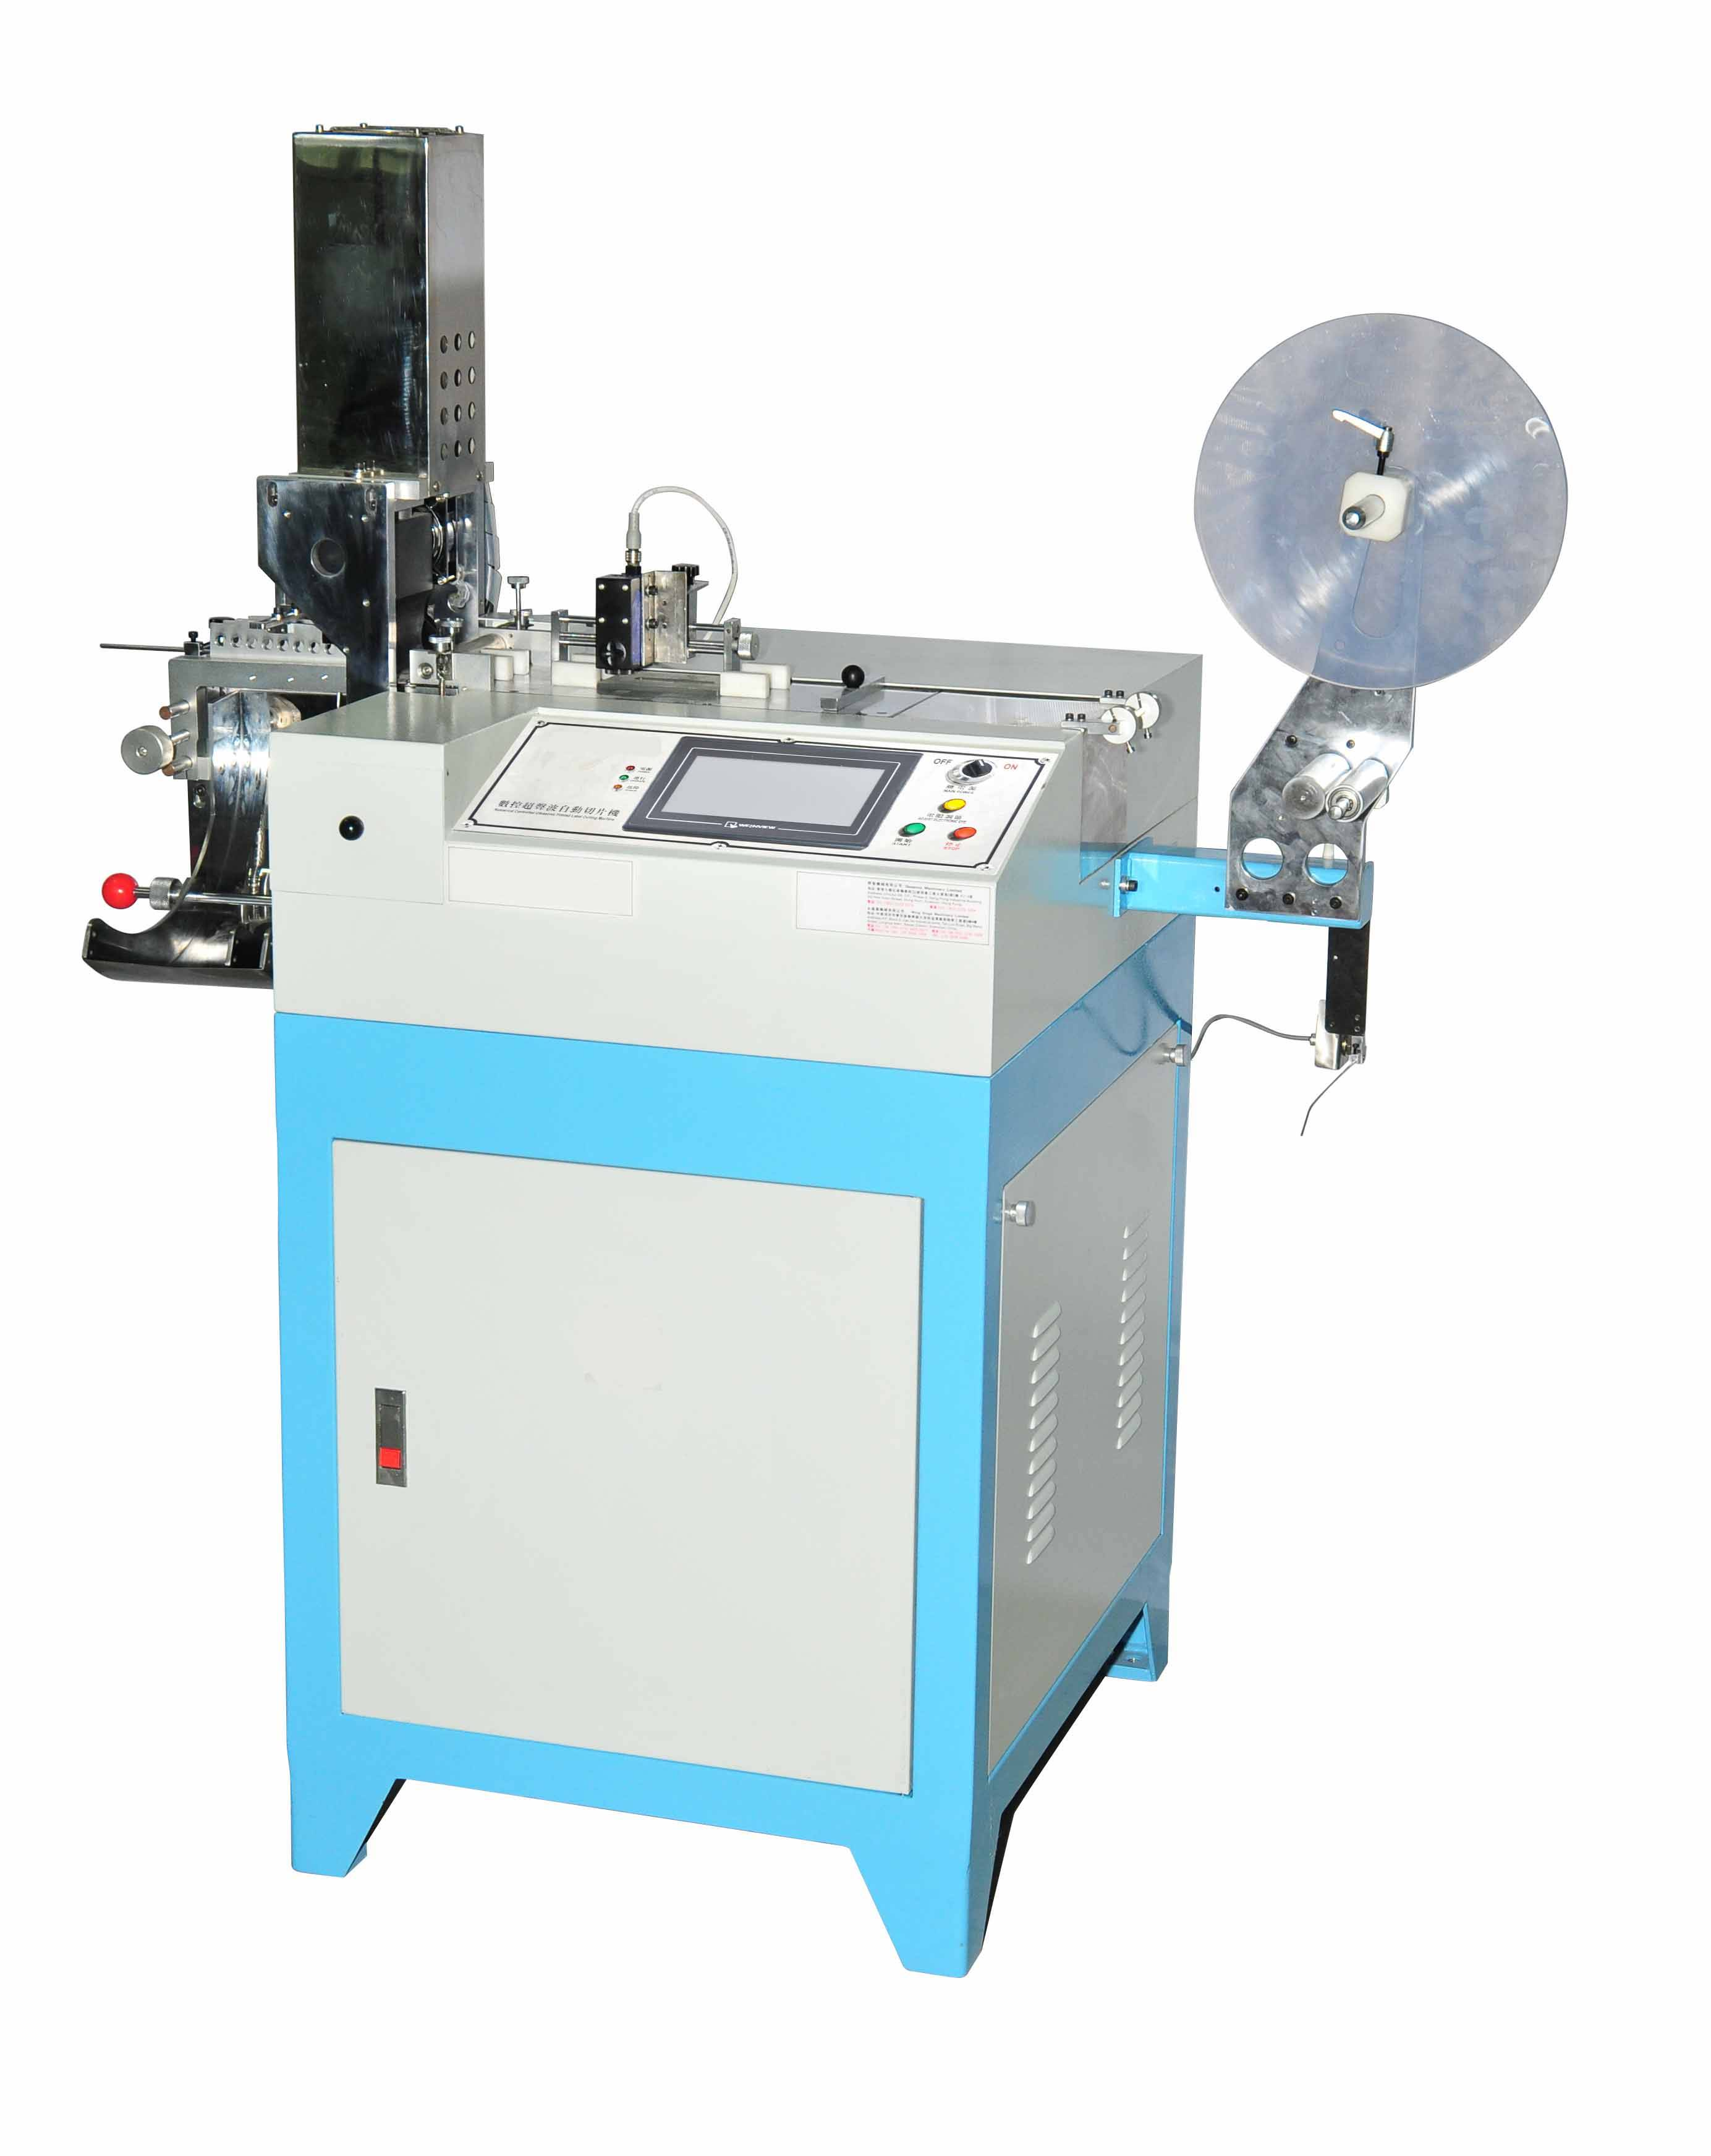 Numerical Controlled Ultrasonic Printed Label Cutting Machine (HY-828)